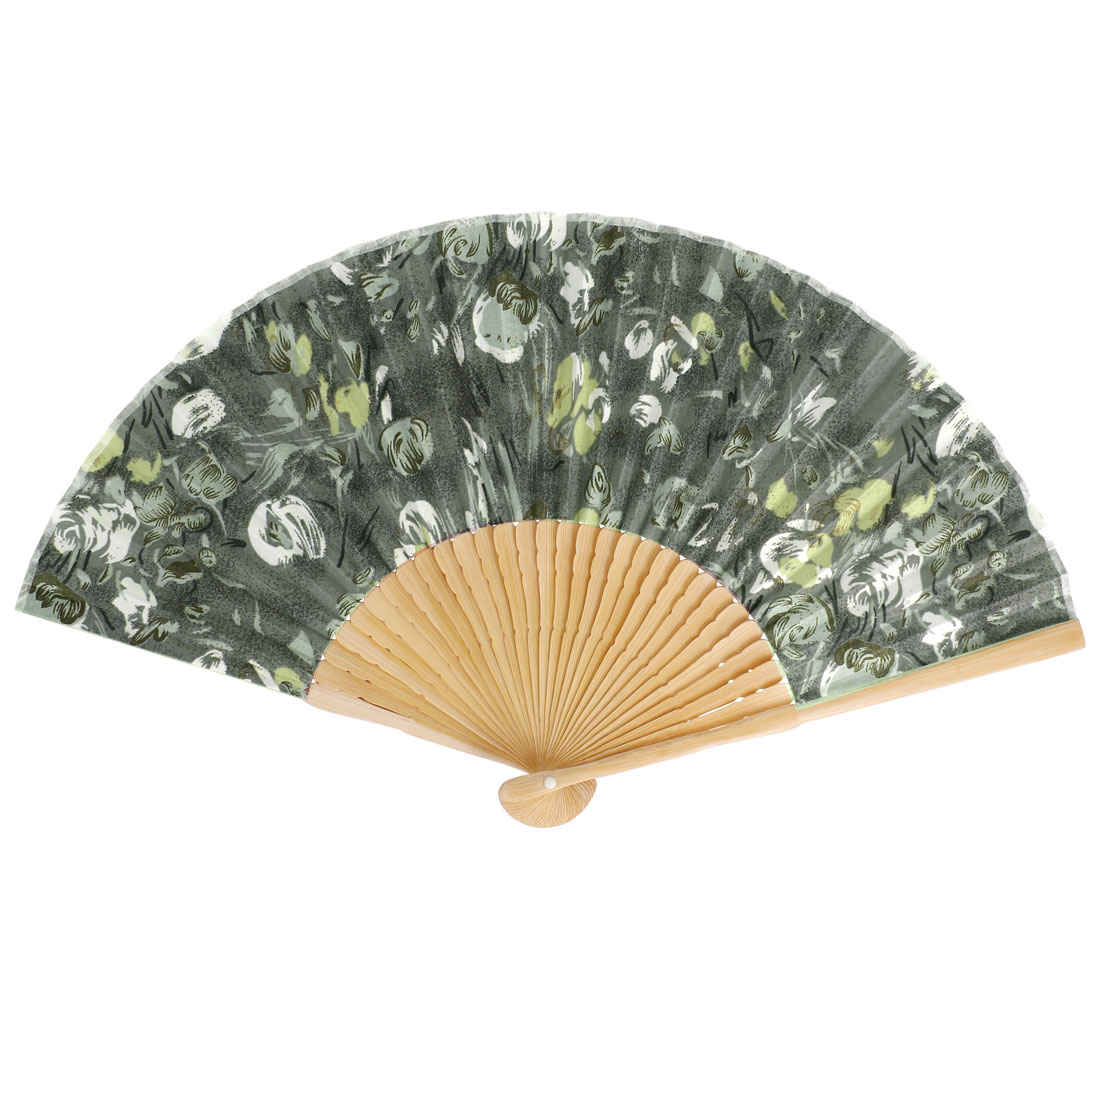 Bamboo Frame Flowers Pattern Dancing Home Party Folding Hand Fan Gray